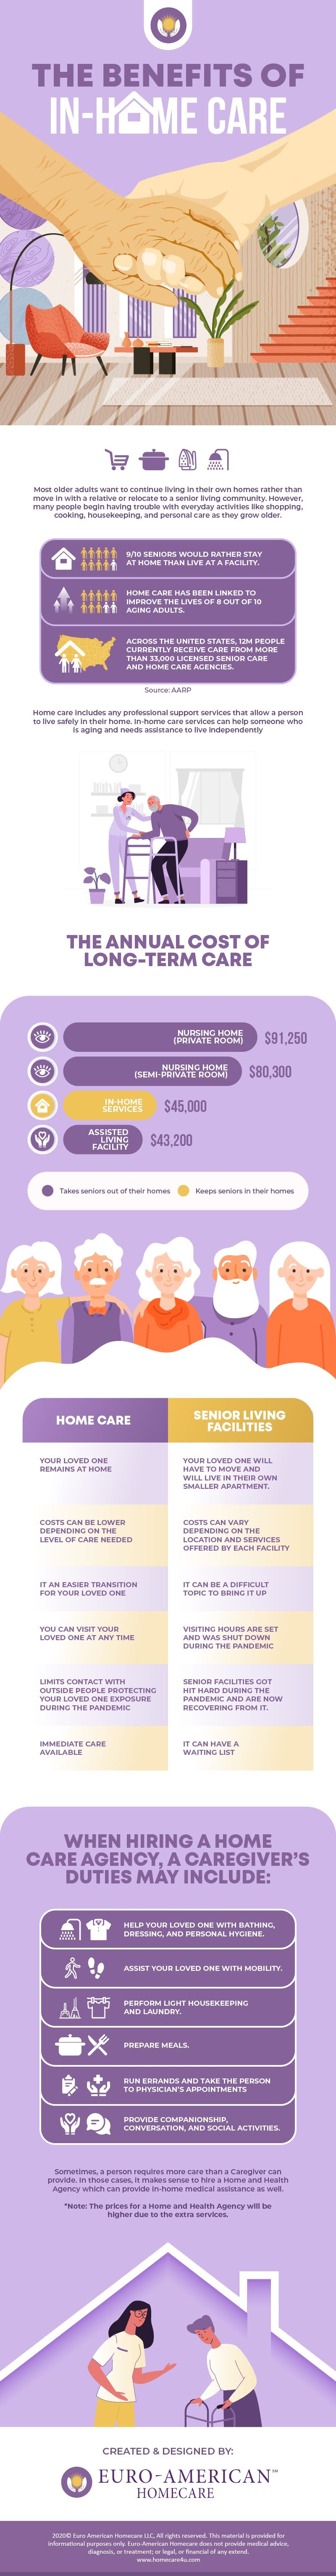 the-benefits-of-in-home-care-infographic